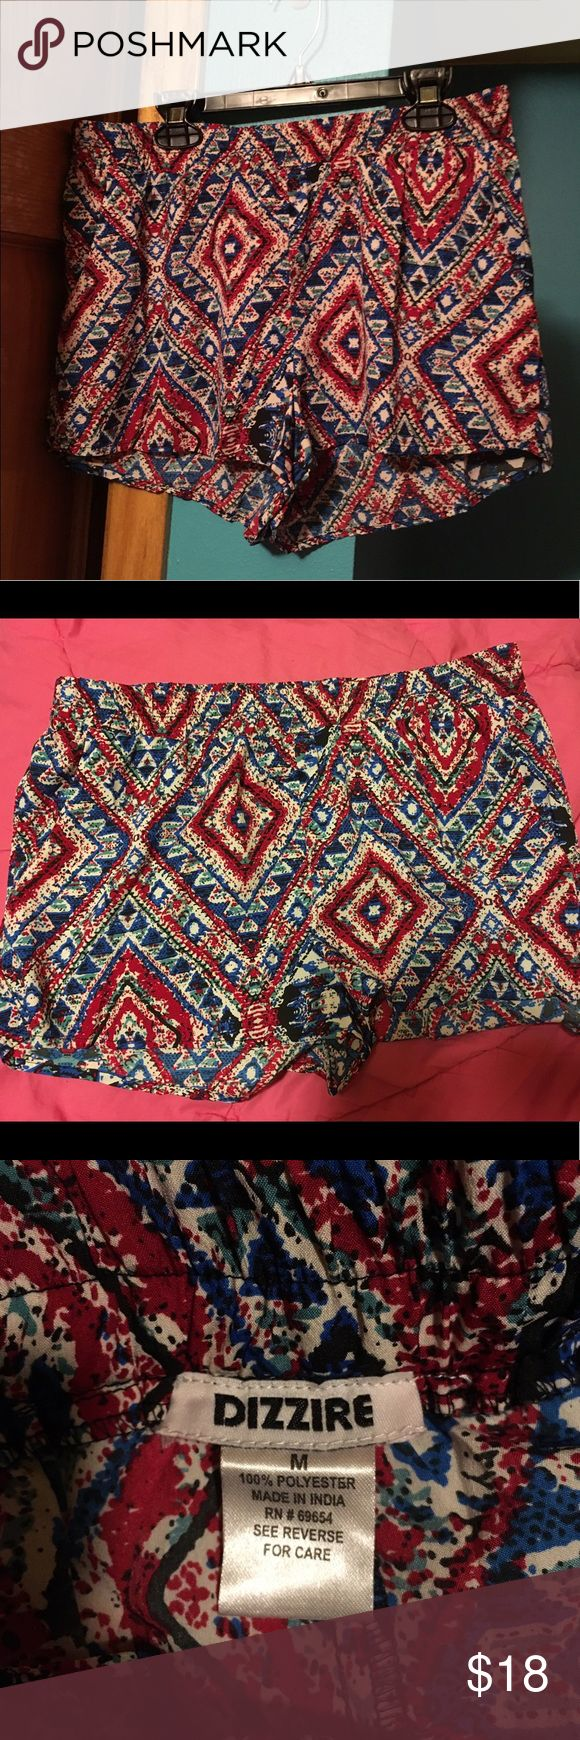 Dizzire Aztec shorts Dizzire Aztec shorts with pockets. New without tags. Excellent condition. Size medium. Willing to negotiate or trade:) Dizzire Shorts